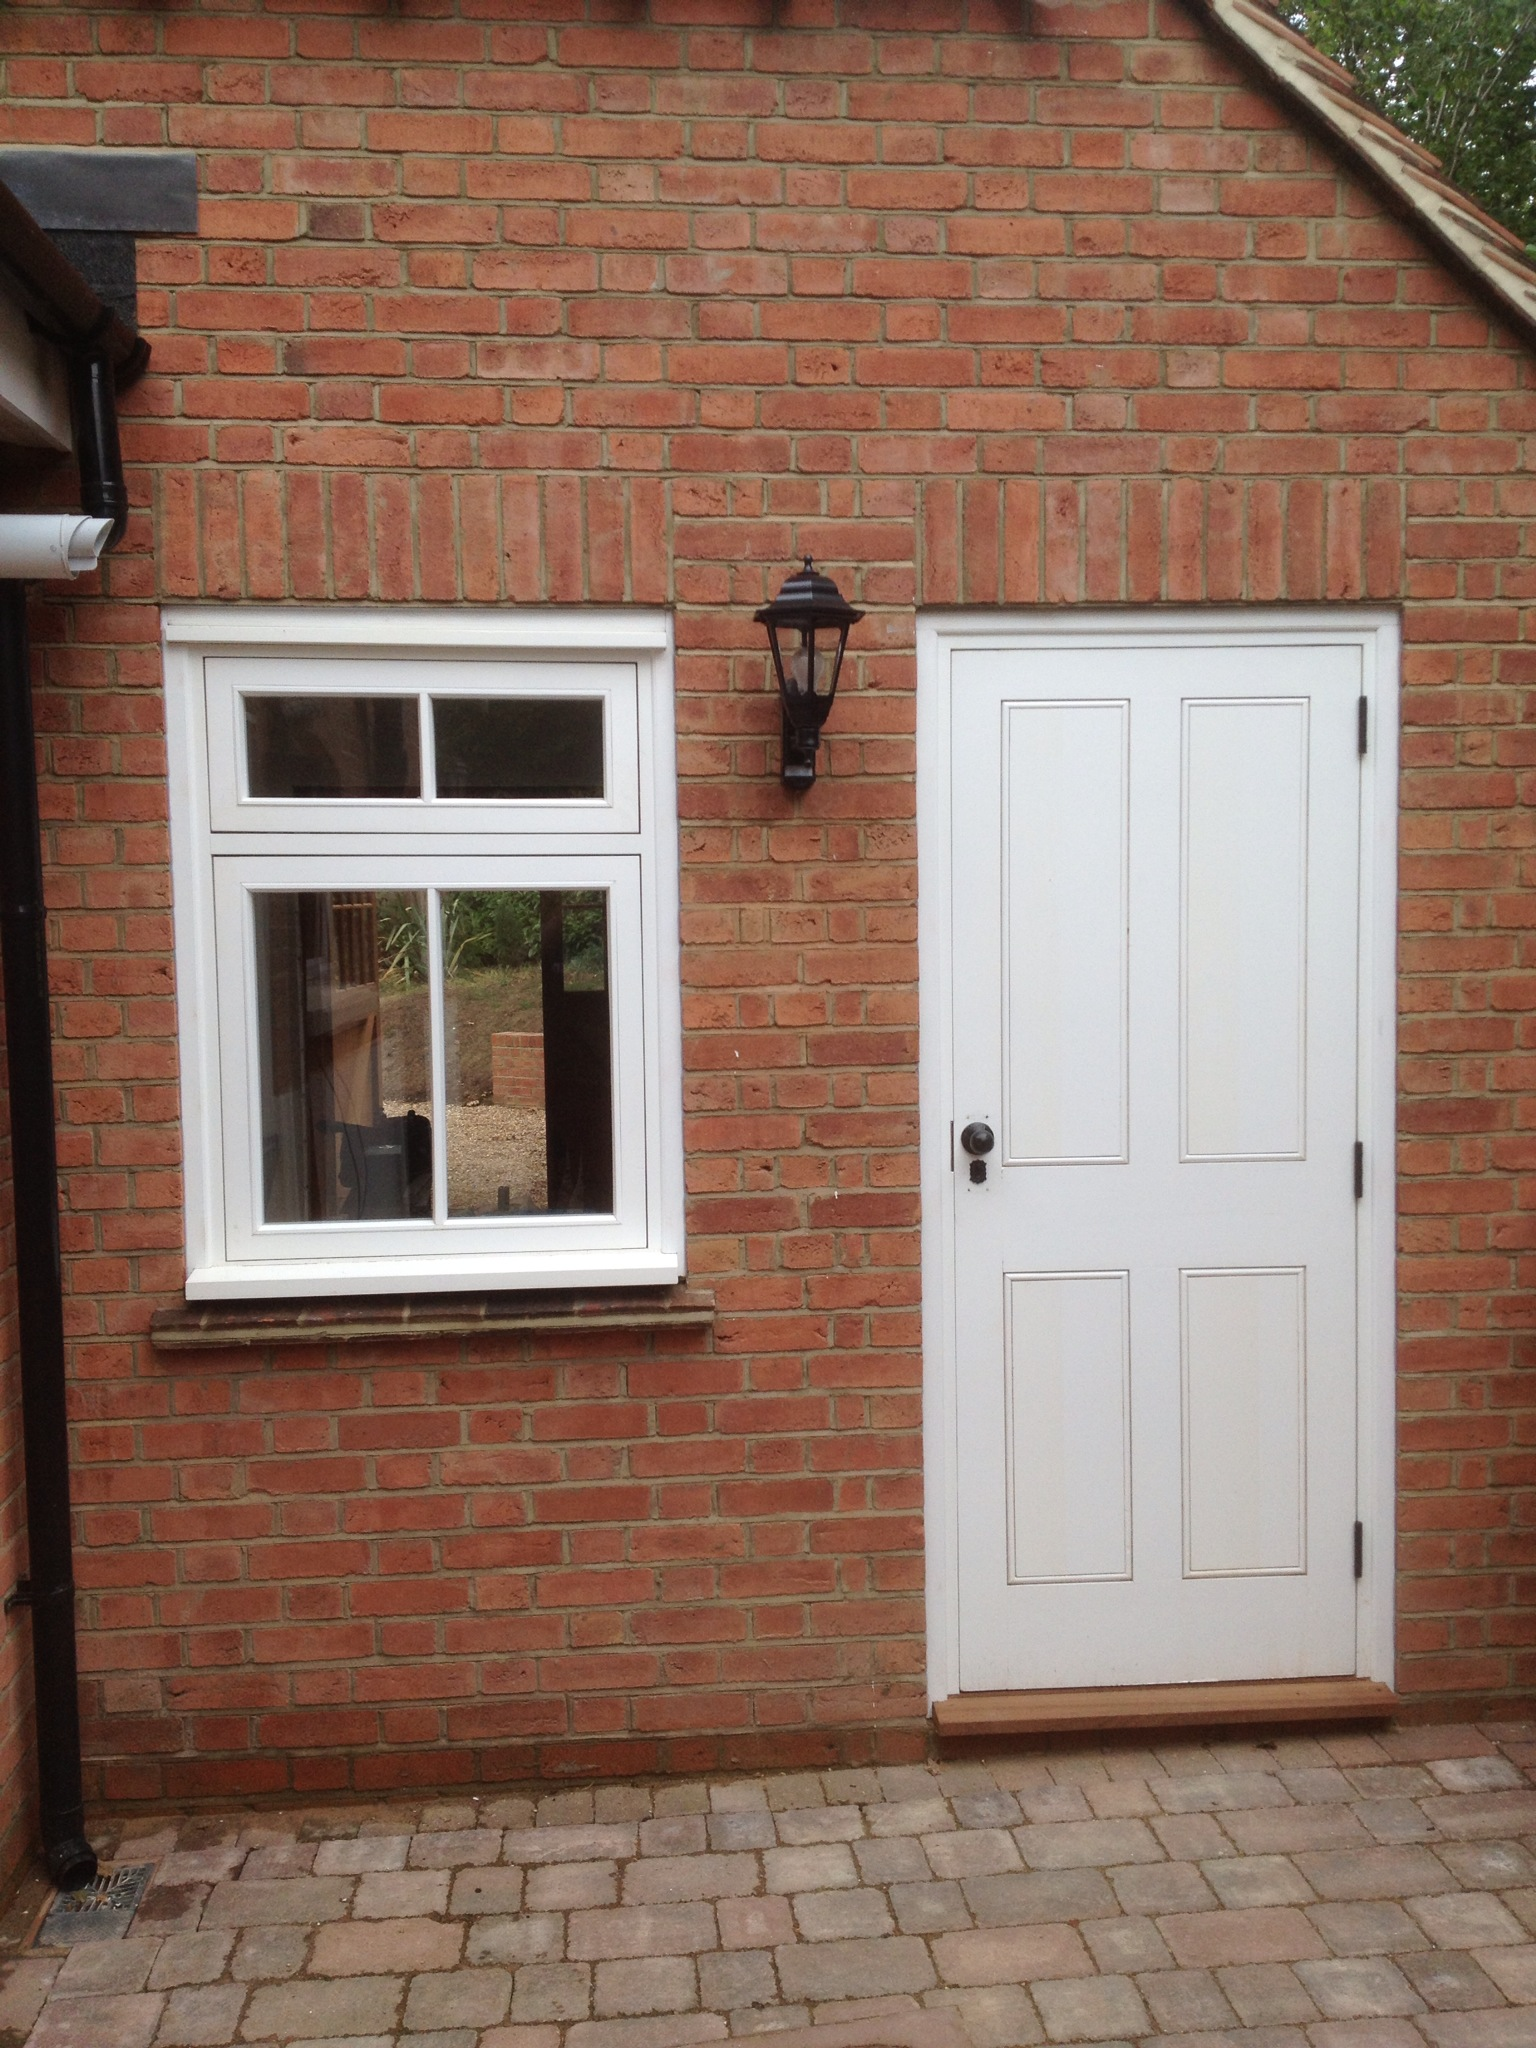 Doors we can supply a wide range of bespoke doors and frames in hardwood or softwood your joinery will be handmade as a bespoke one off or a replica of your rubansaba